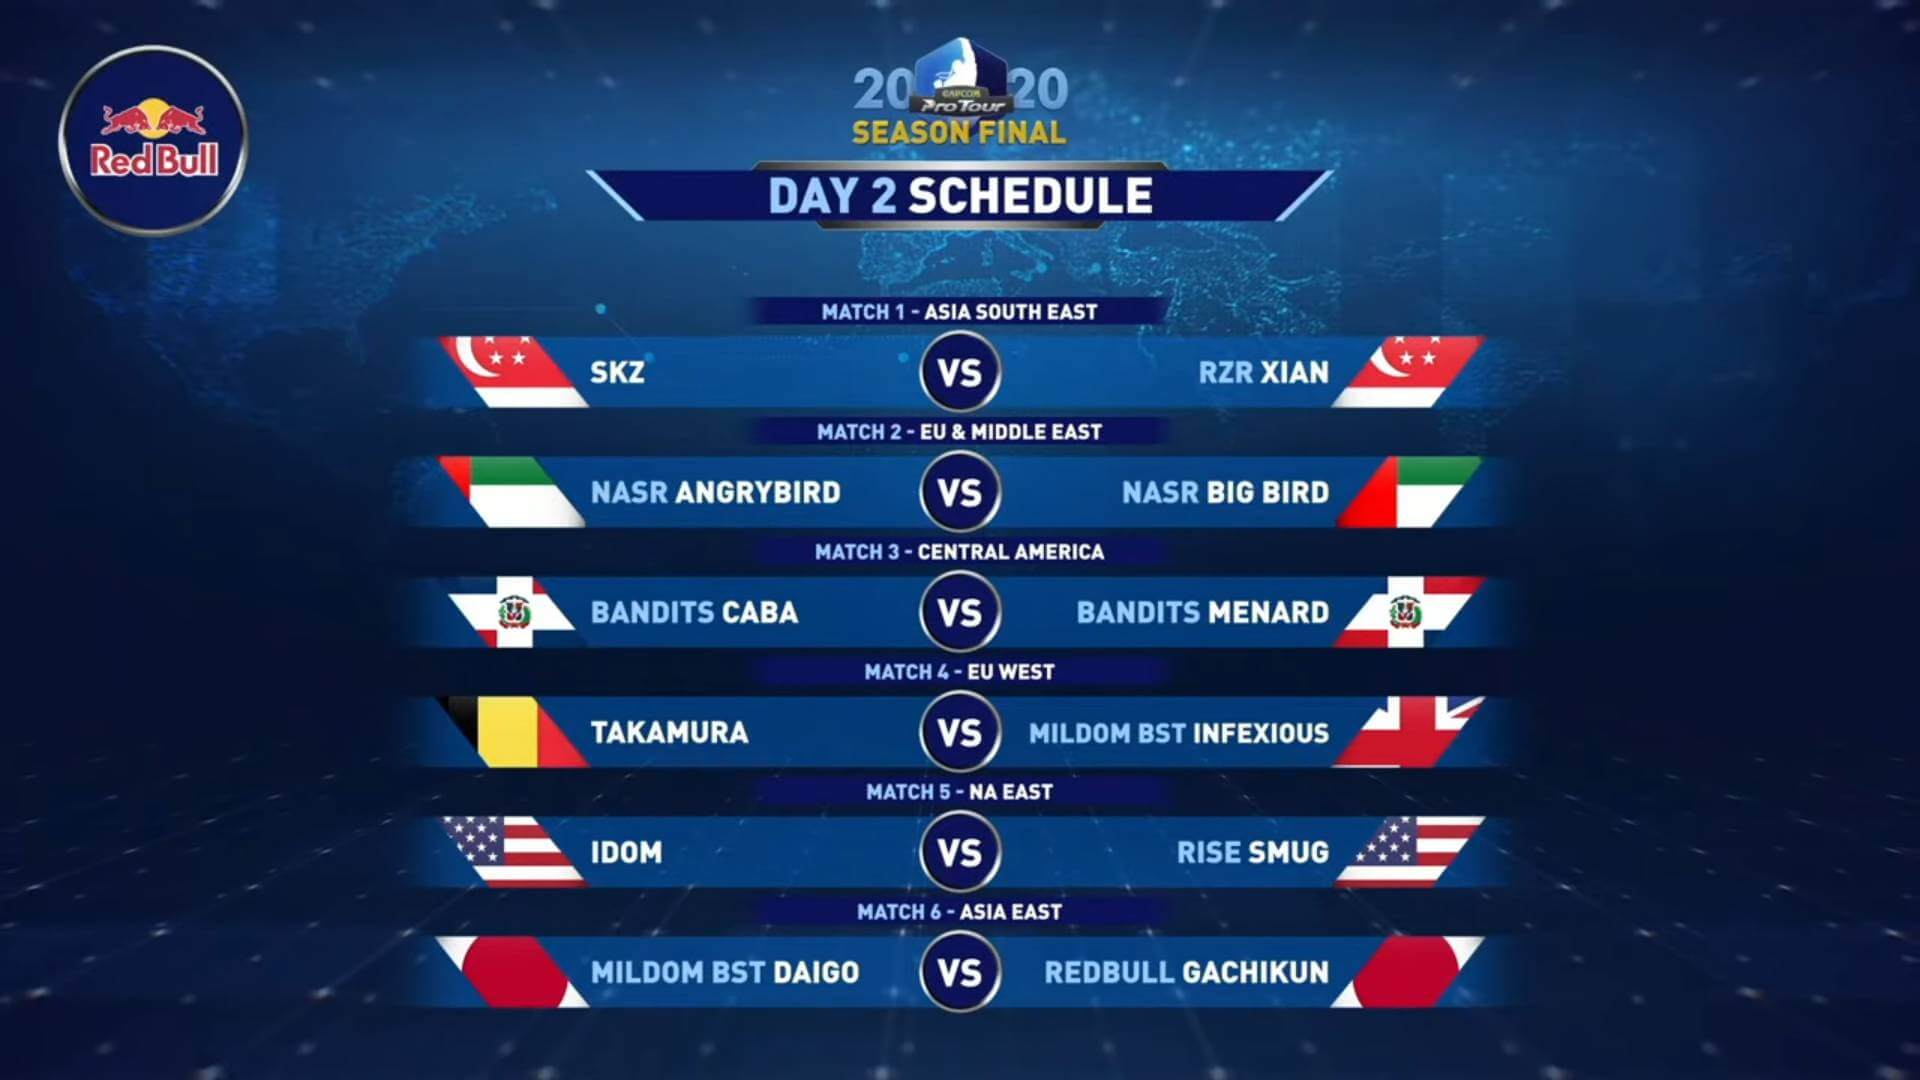 Capcom Pro Tour 2020 Season Final, Street Fighter V esports - all the matches of day 1